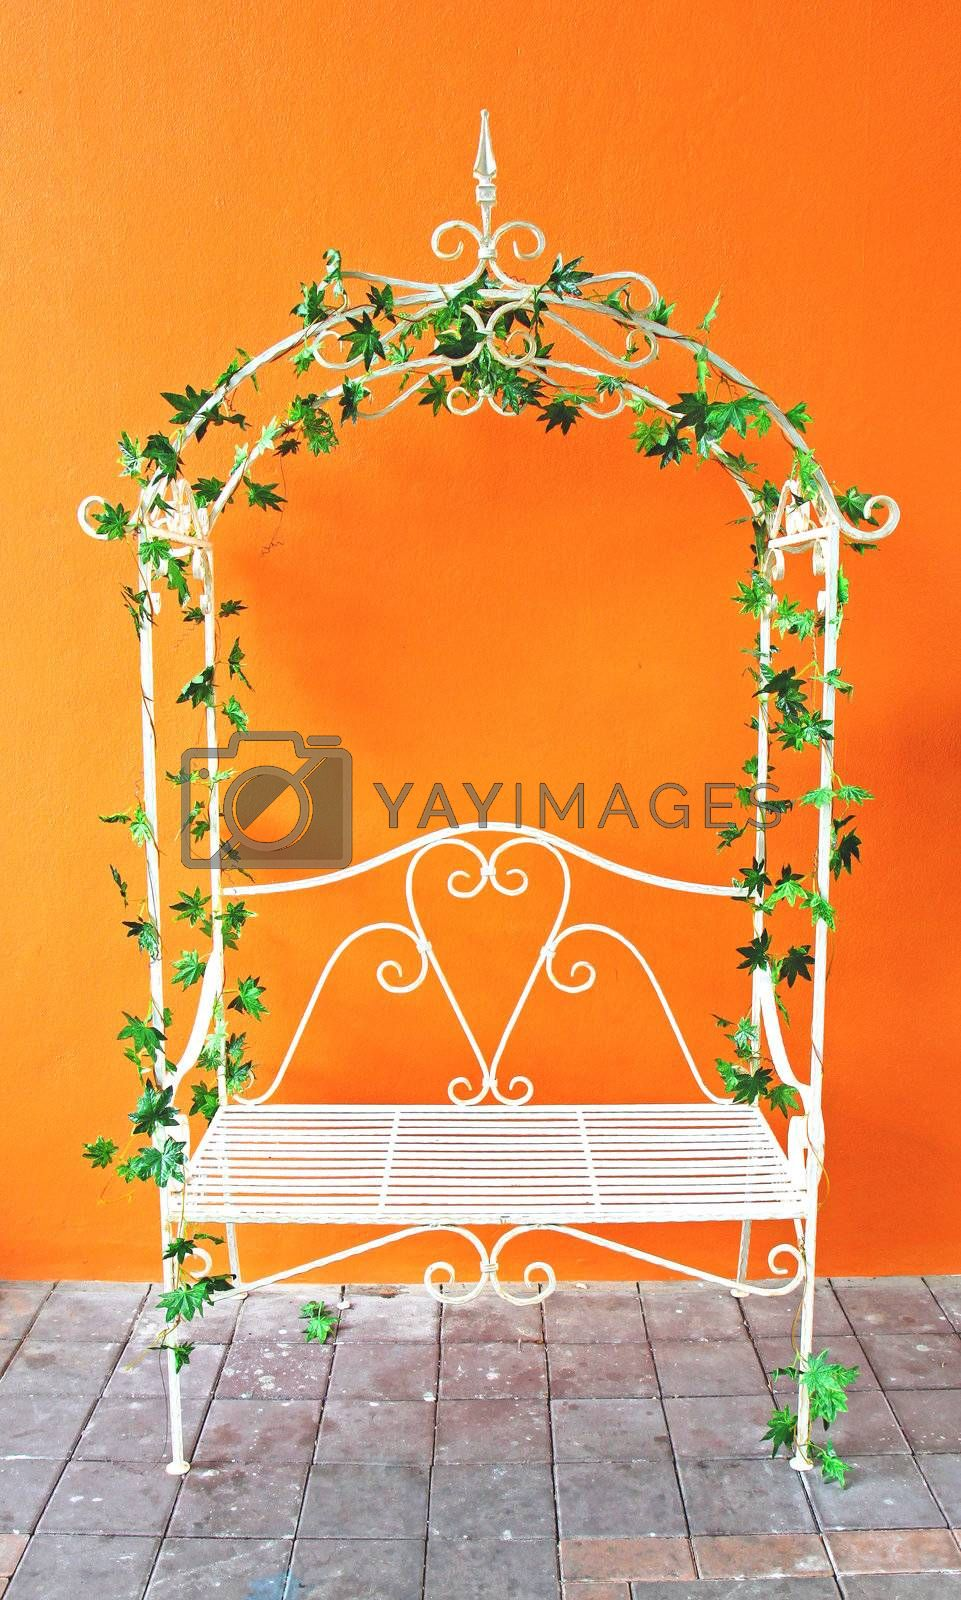 Decorated white romantic vintage chair with orange wall